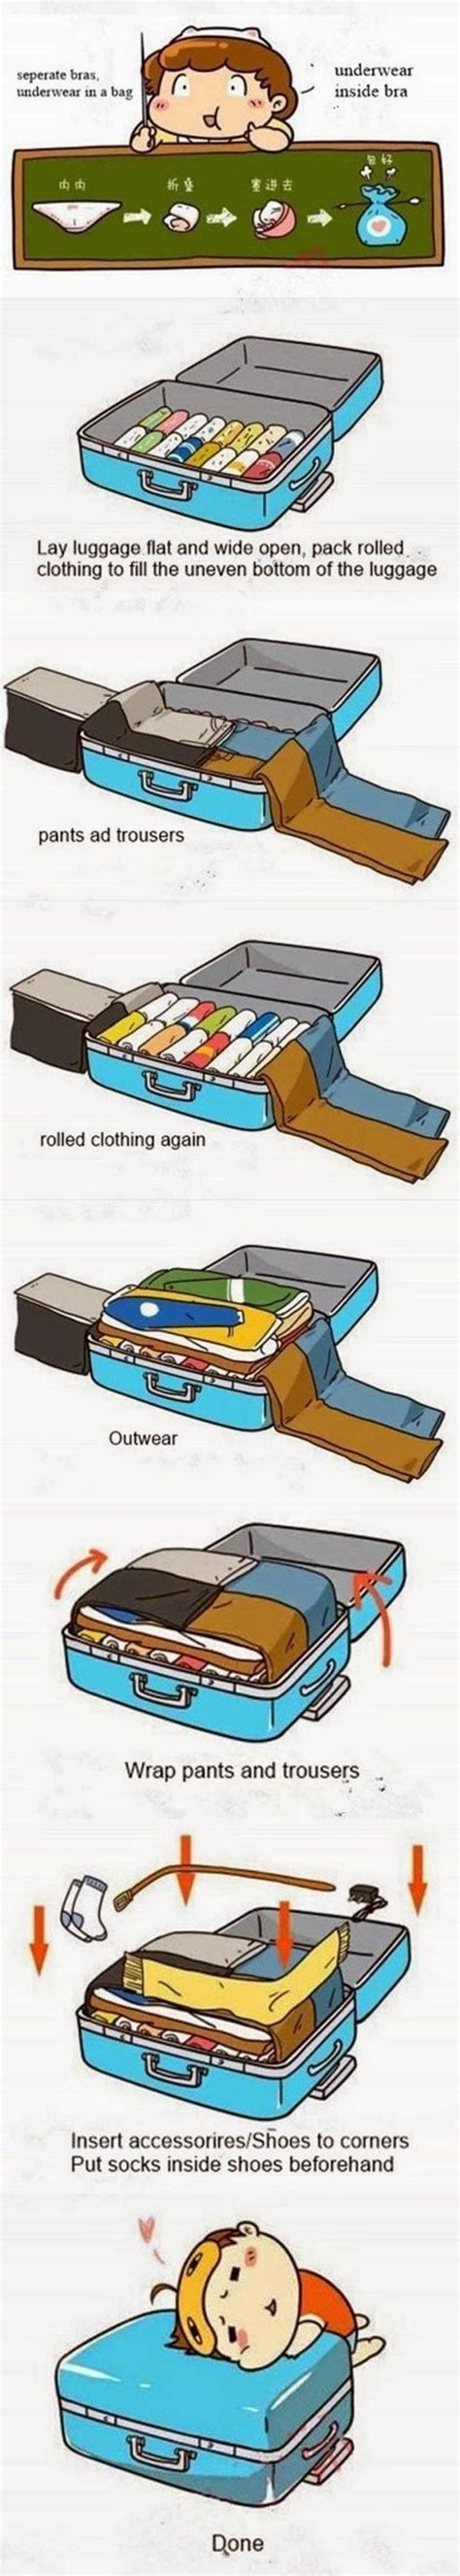 Packing Luggage Properly In 2019 Packing Tips For Travel